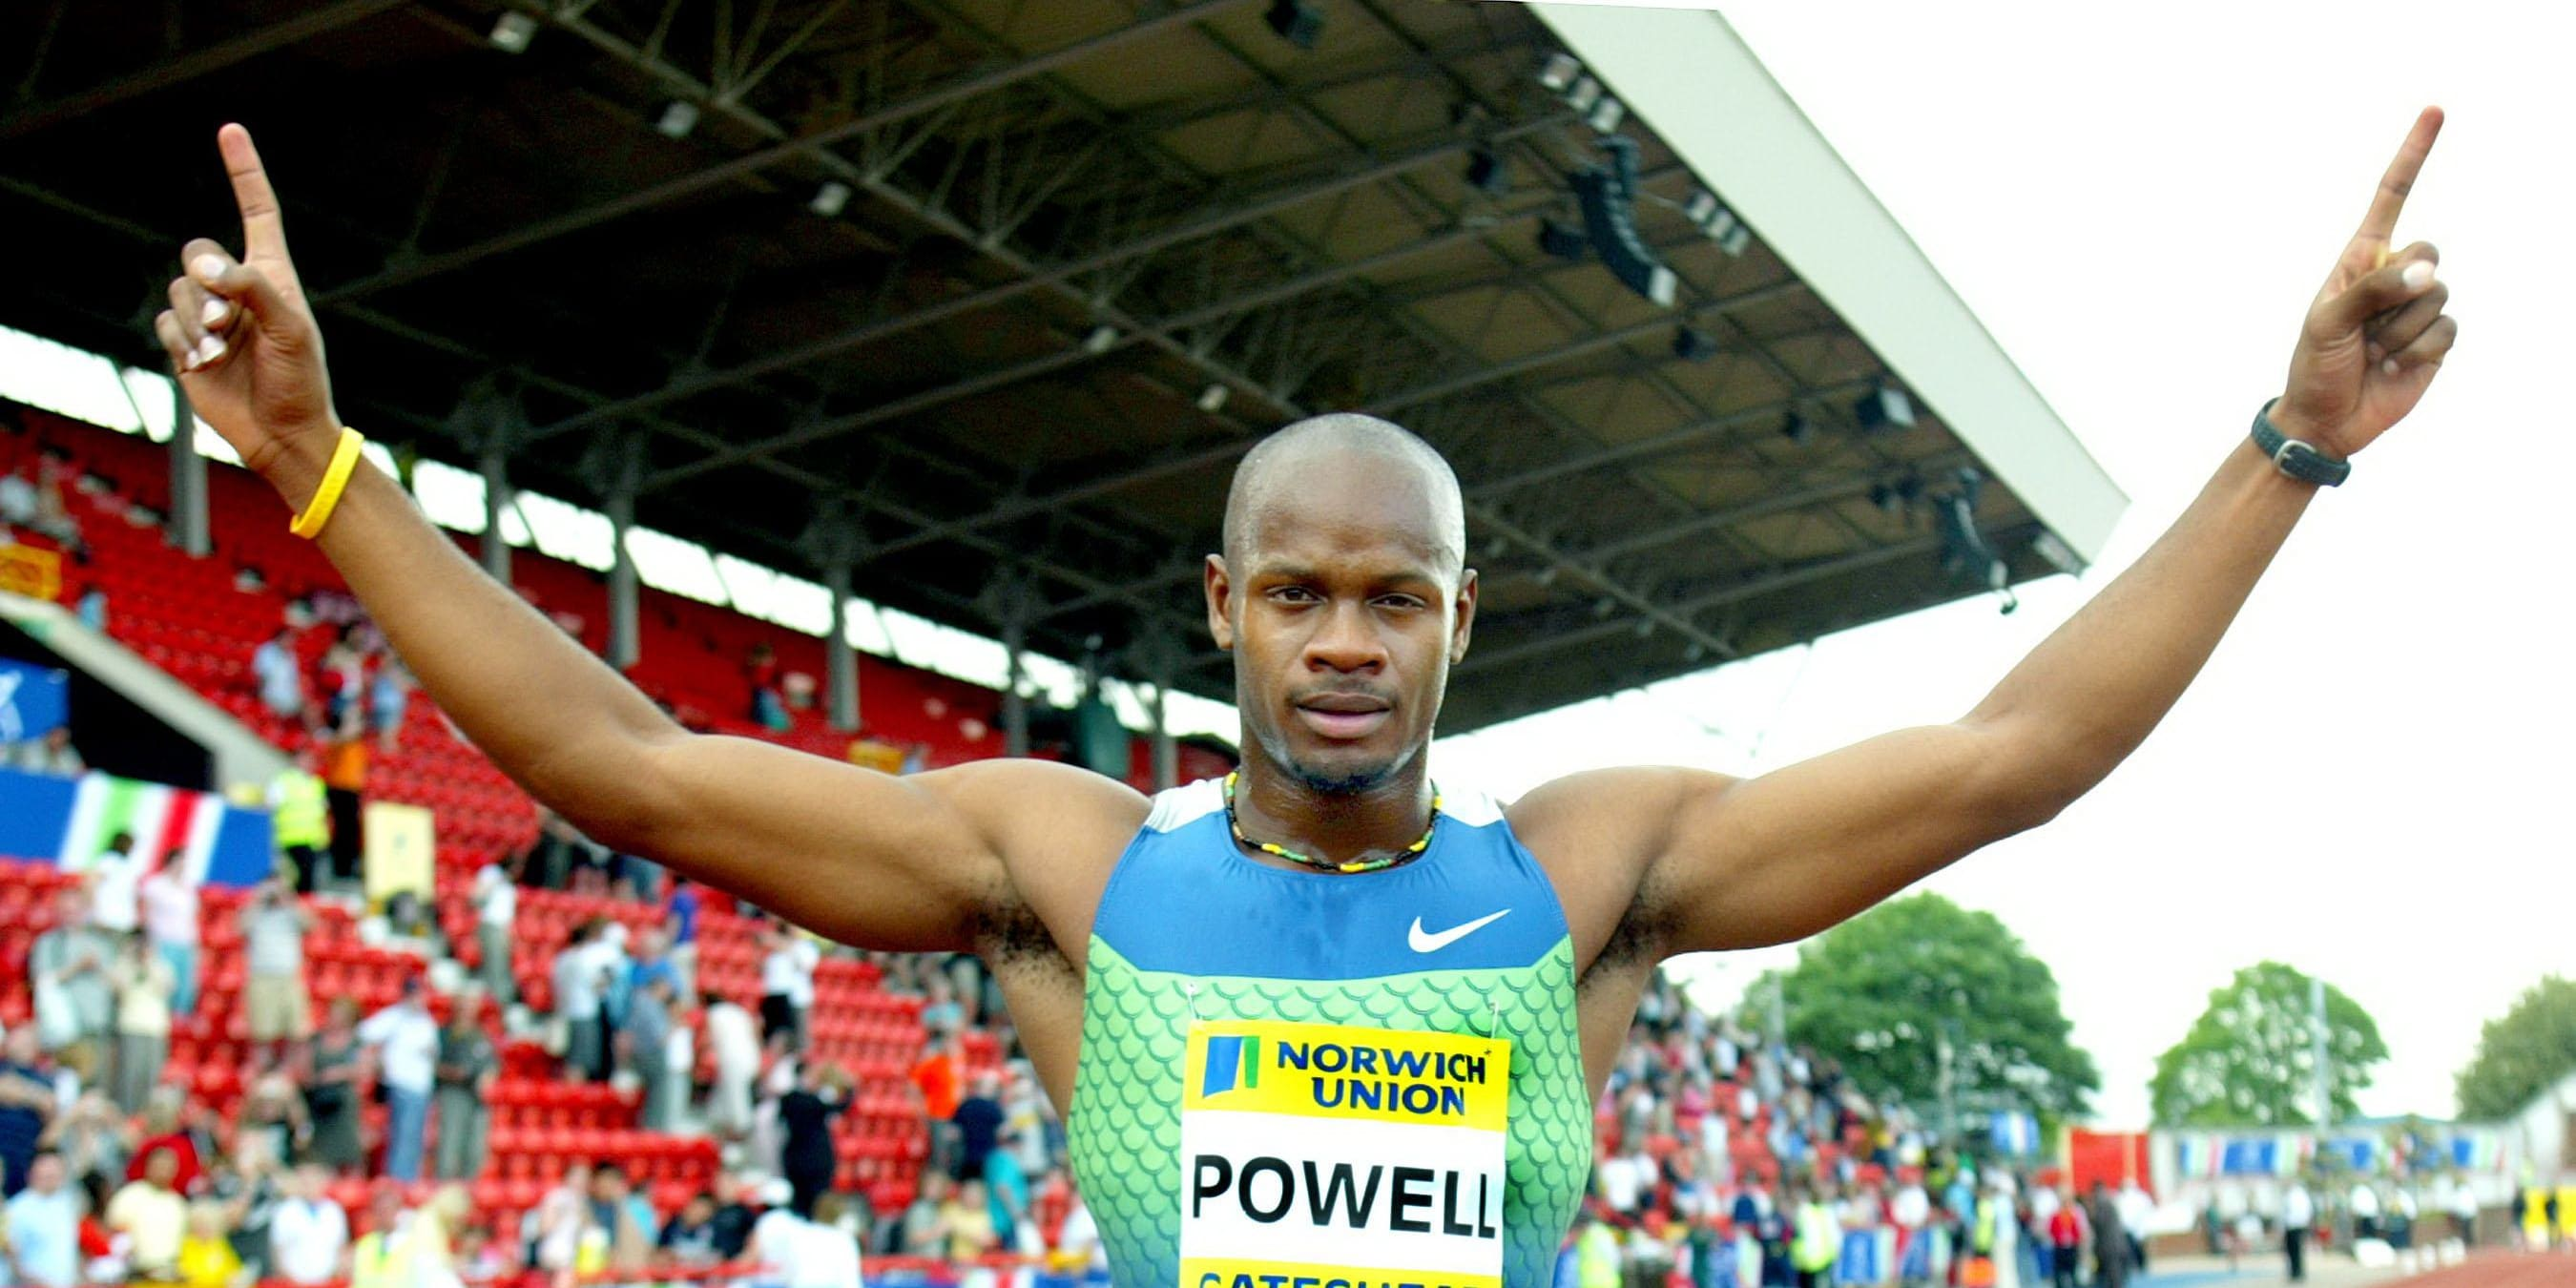 The Triple Crown Usain Bolt Cements Legacy Greatest Sprinter History Makes Nine Gold Medals Nine 4x100m Relay Victory additionally Athletics 20 sport likewise Michael Phelps Body Images 2012 also Dixon  leroy moreover Amita. on asafa powell biography